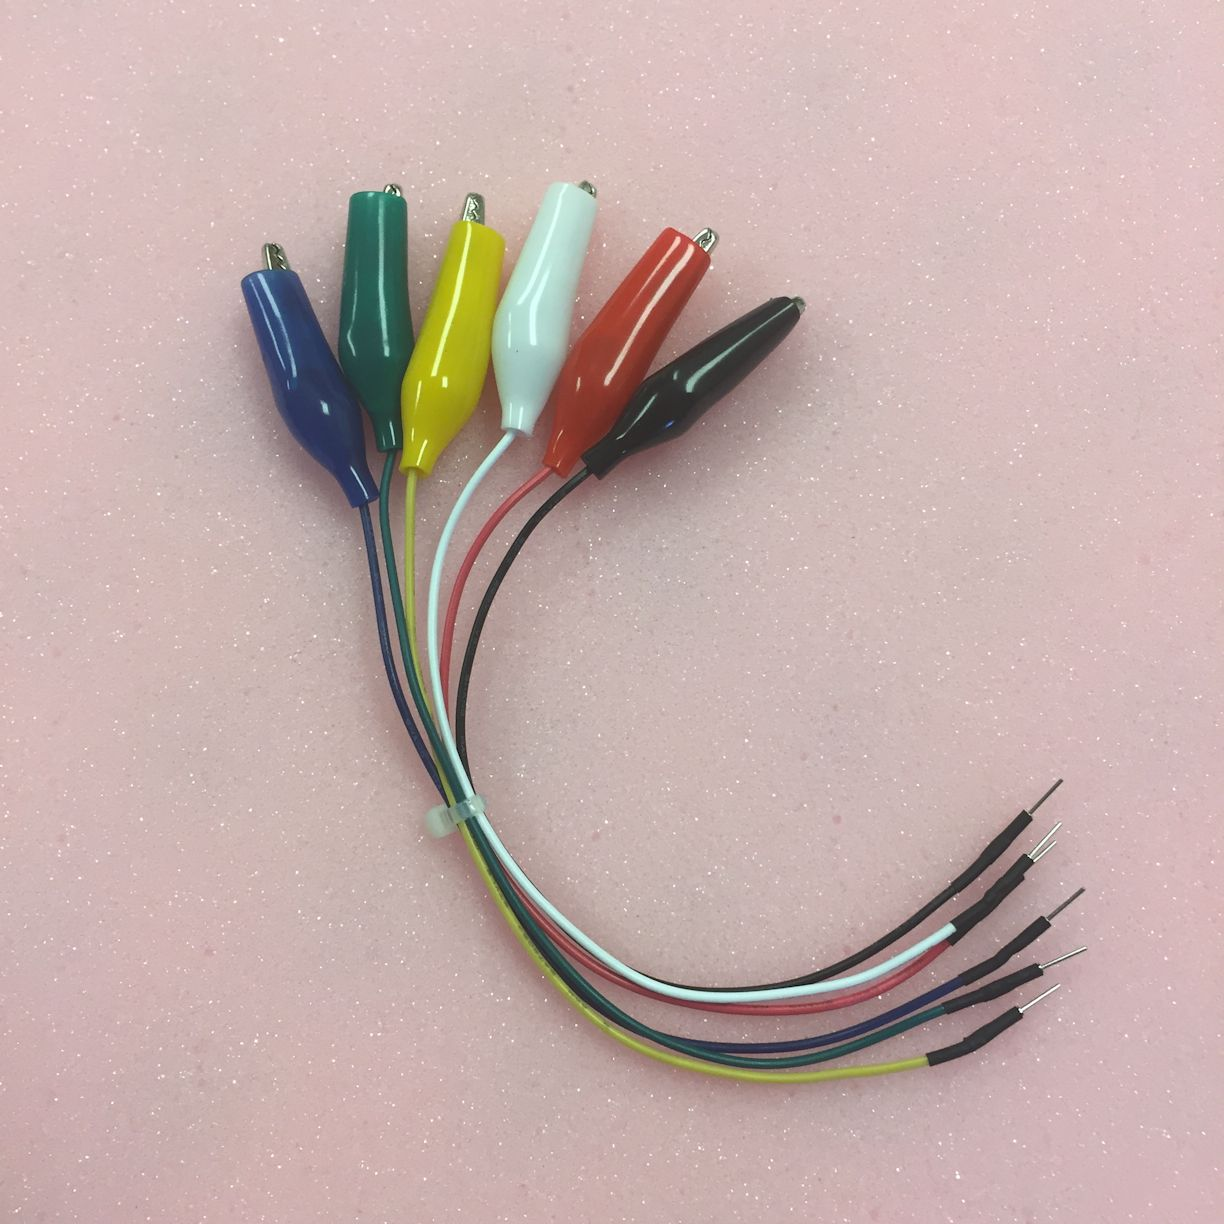 Twin Industries Wire Kits Accessories Wiring Jumper Wires With Alligator Clips Male Machine Pins